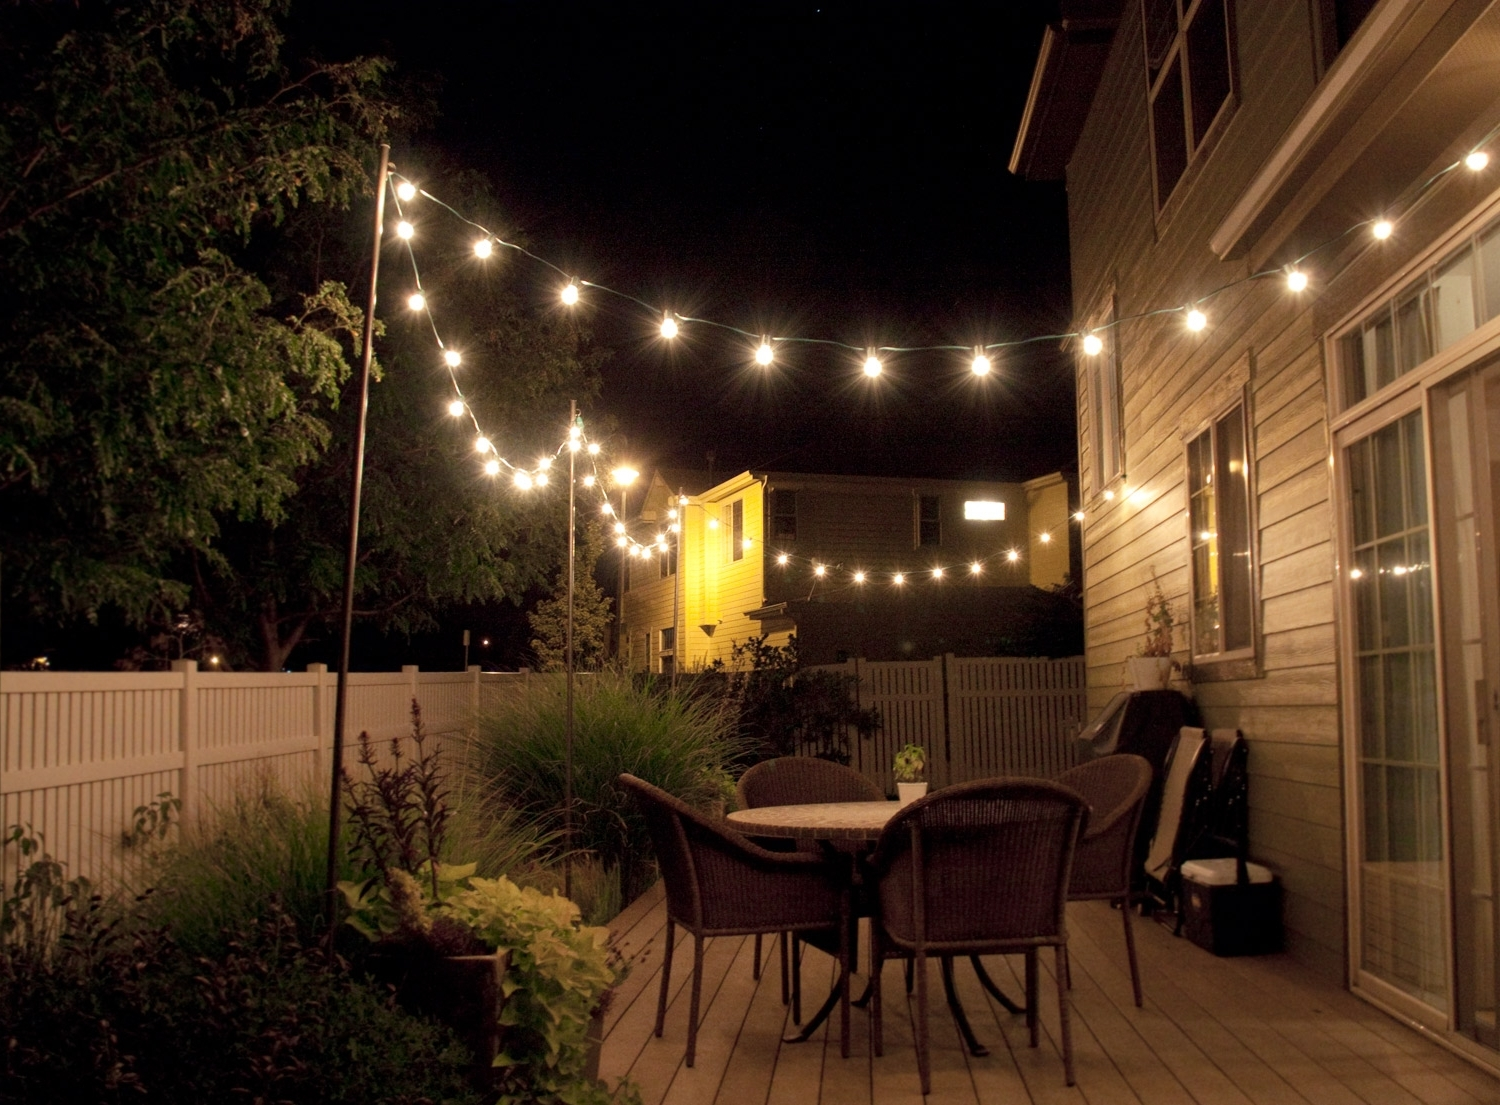 Battery Operated Outdoor Lights Pertaining To Fashionable Outdoor Battery Operated Porch Lights — Bistrodre Porch And (View 6 of 20)